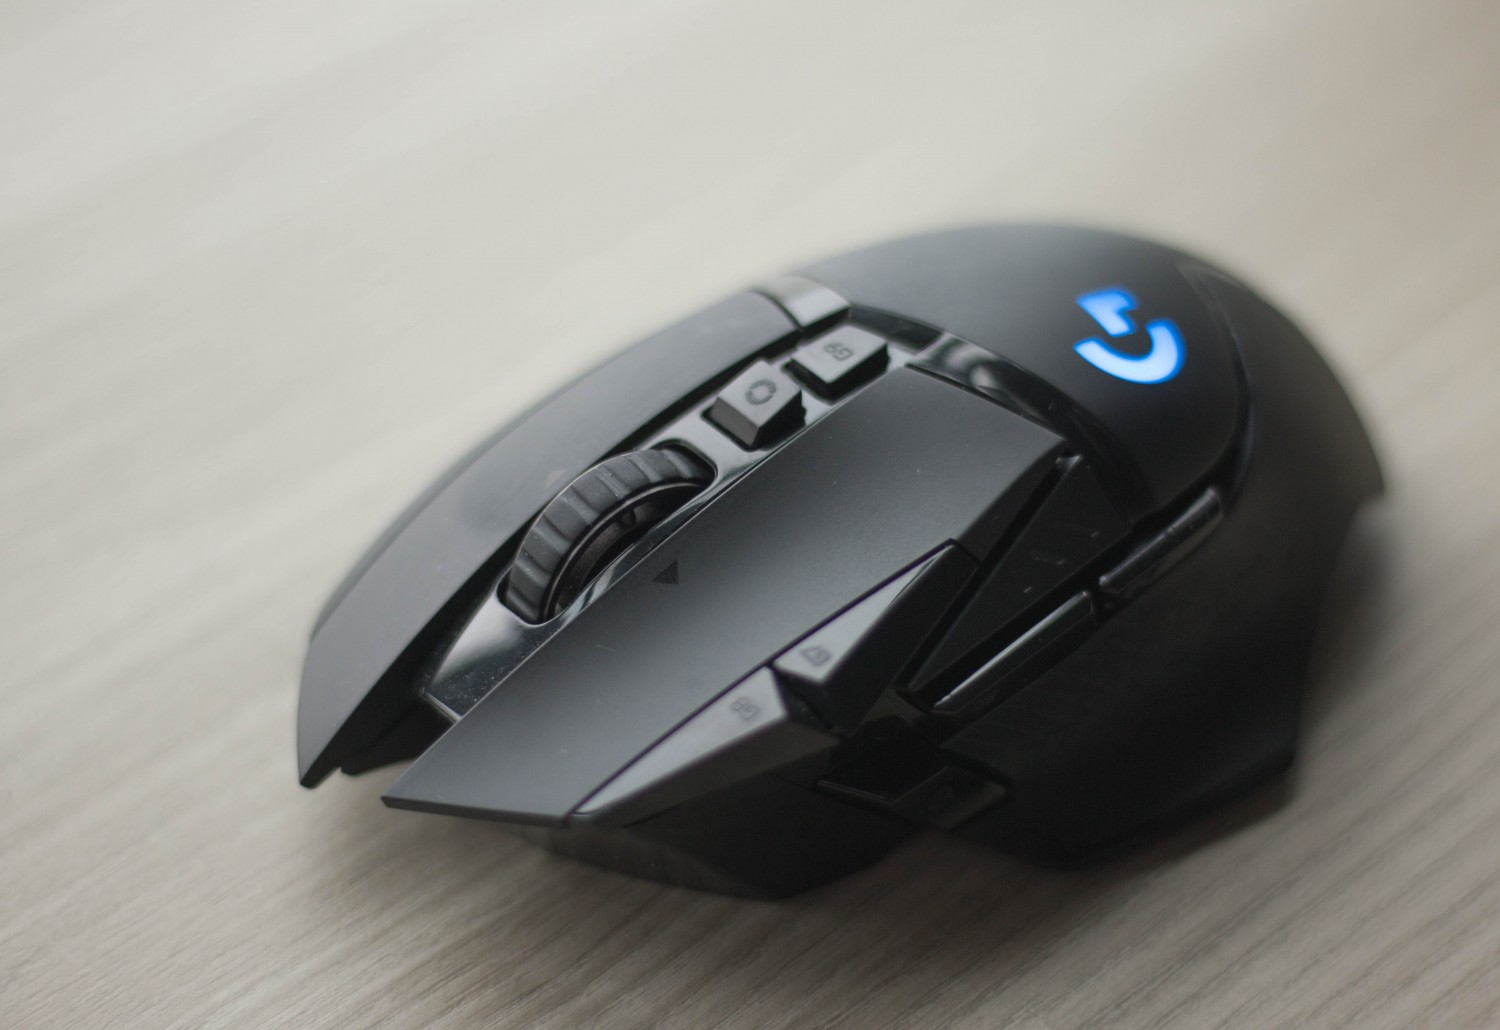 Geek Review: Logitech G502 Lightspeed Wireless Gaming Mouse